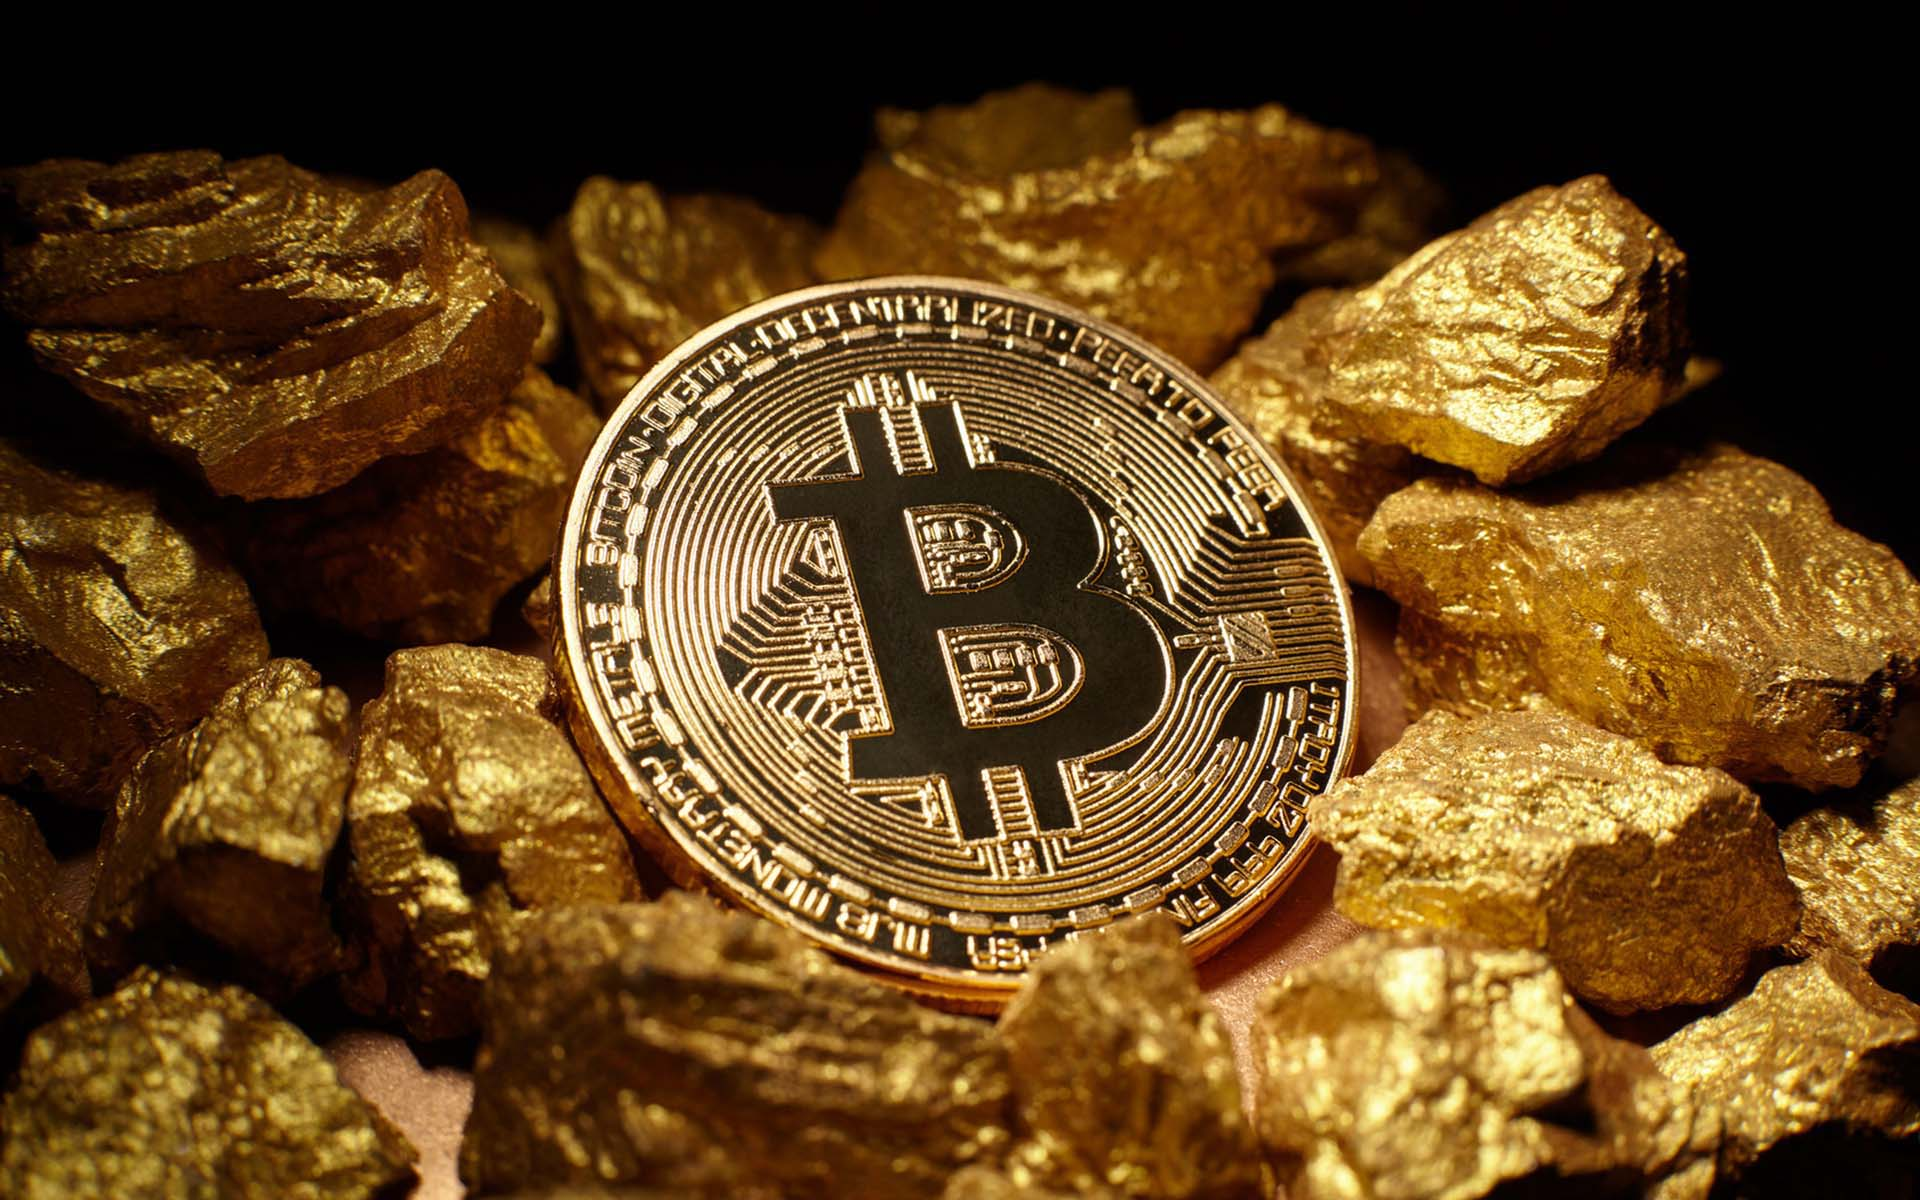 coinjolt bitcoin gold cover - Bitcoin (BTC) Has Increased Utility Compared To Gold, Crypto Skeptic Paul Krugman Says